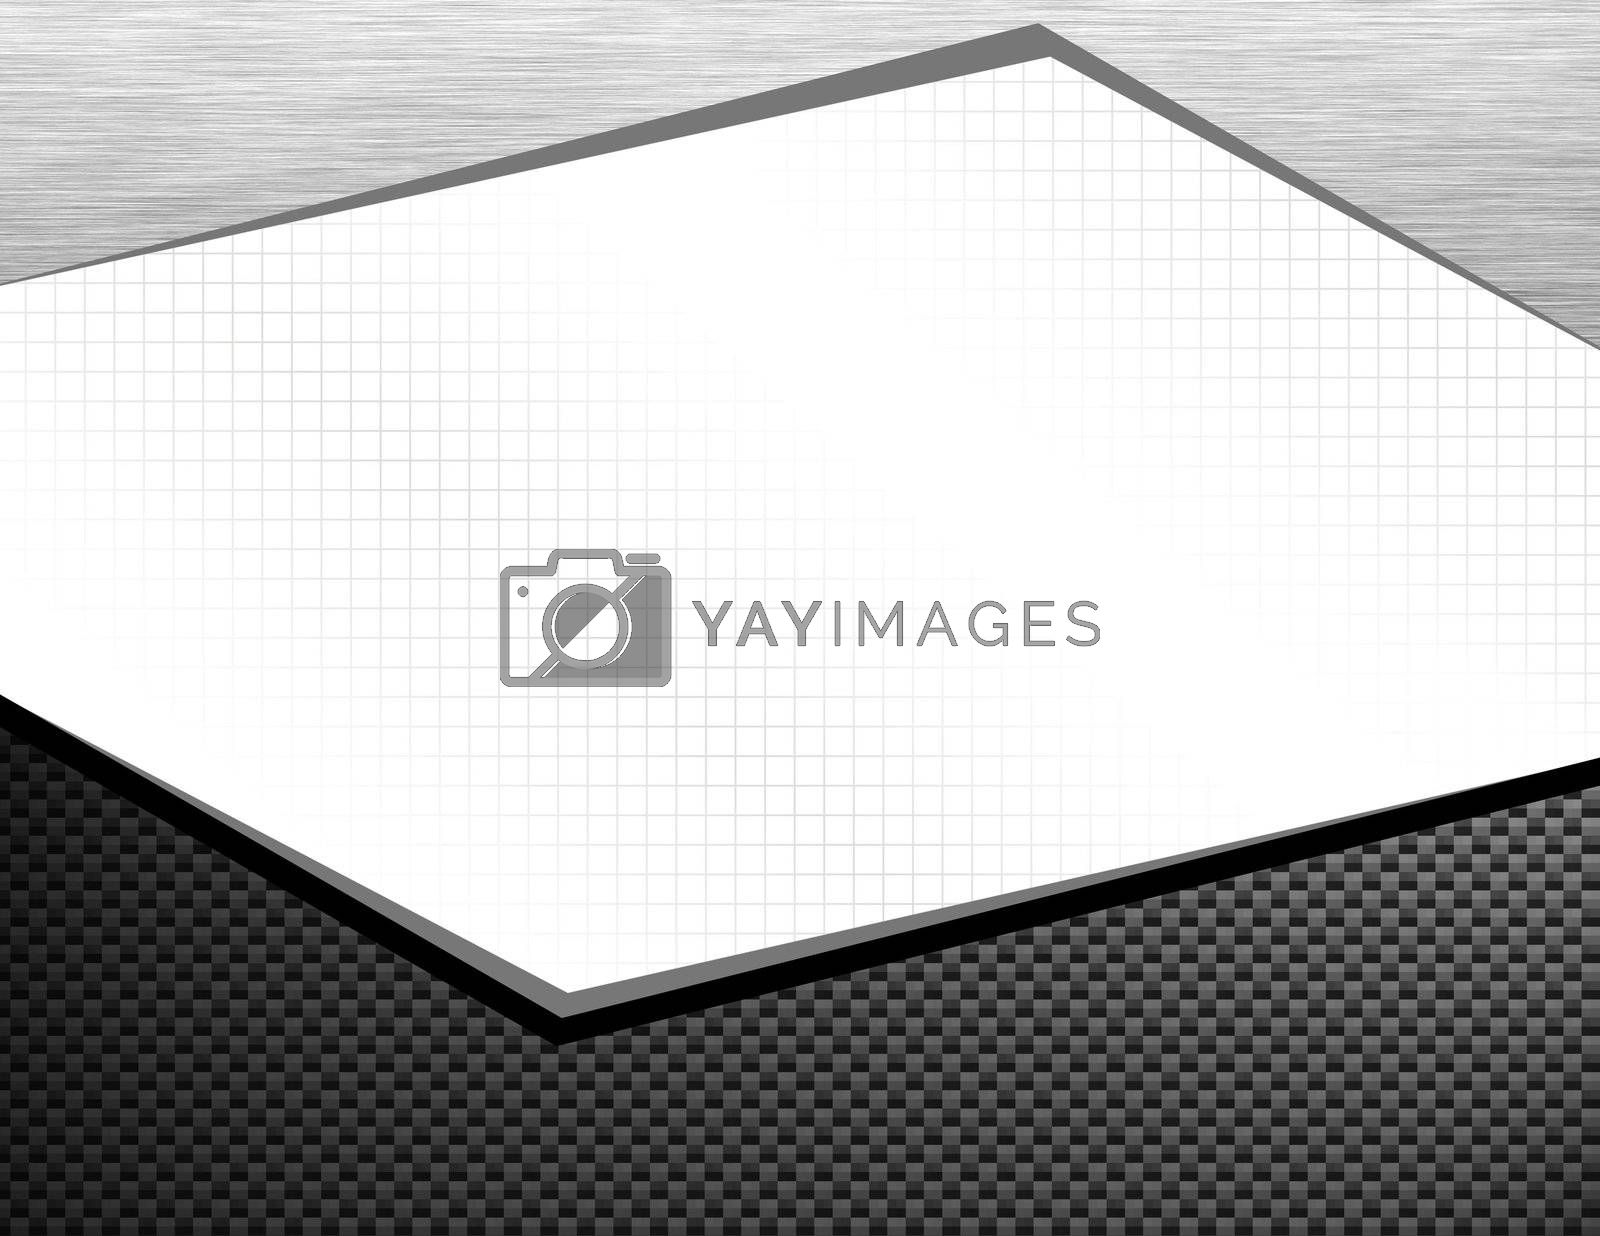 A page layout or frame featuring carbon fiber and brushed aluminum - it includes the clipping path to remove everything in the center white area.